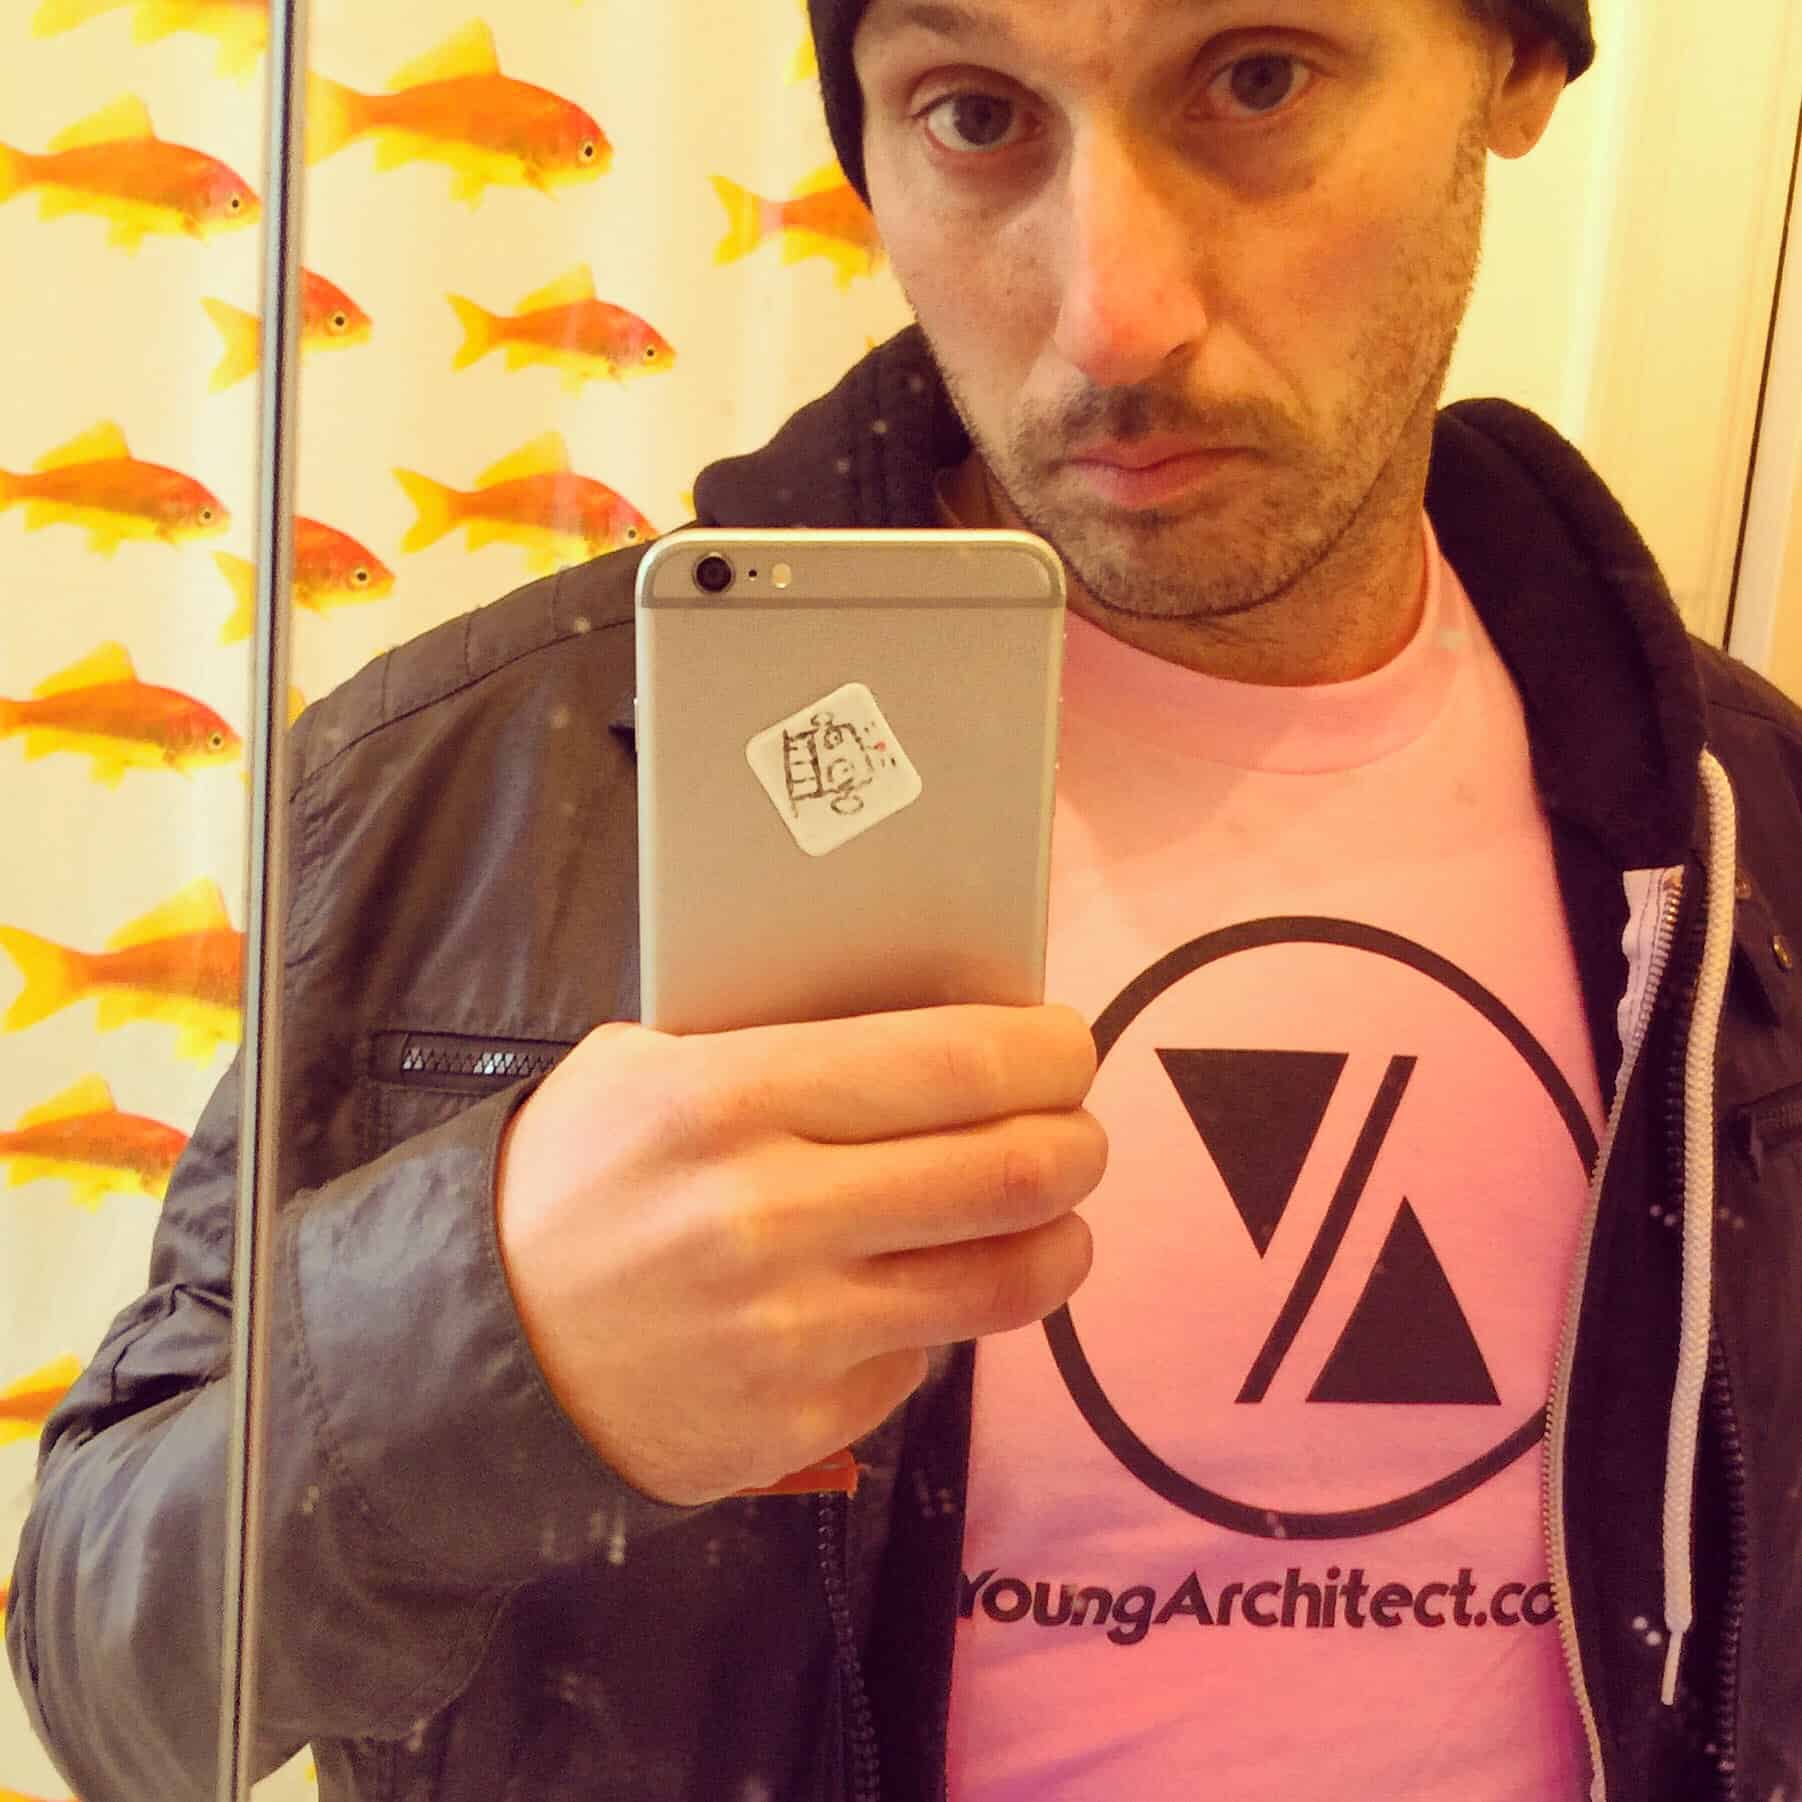 My new pink Young Architect shirt. #illwearapinkshirt #ilikepink #mikeriscica666 #mrpink